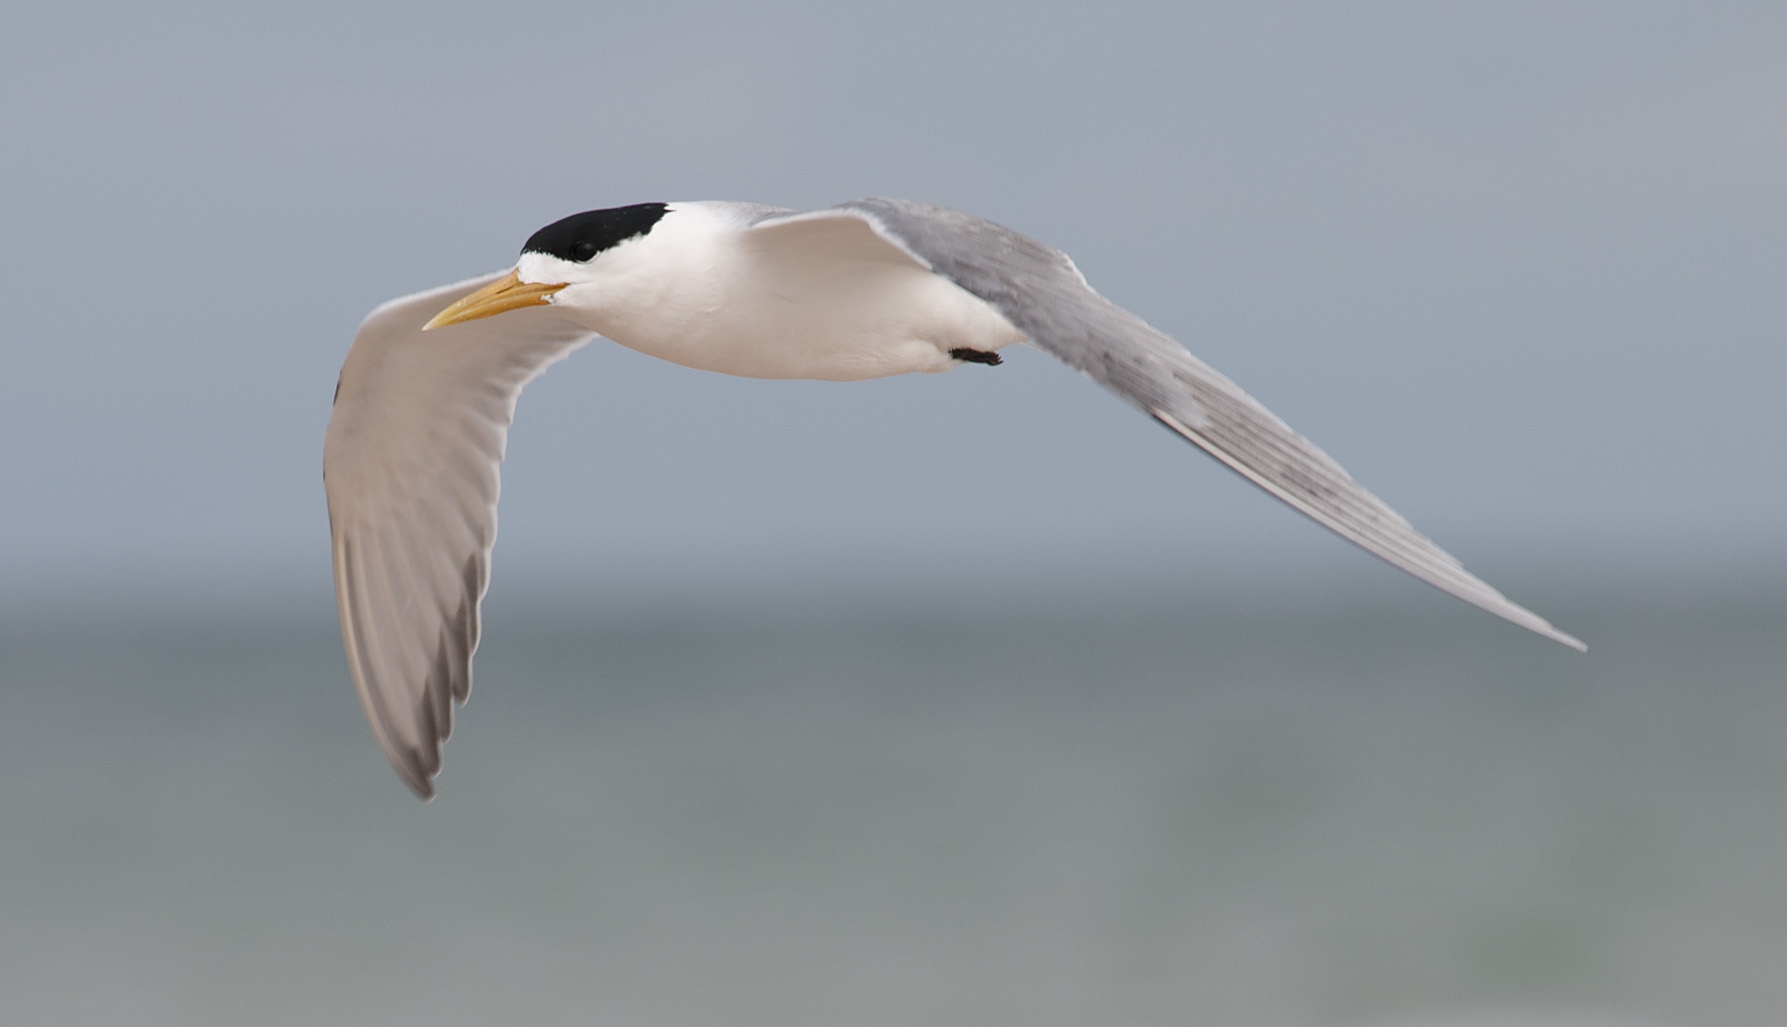 Greater_Crested_Tern_20111227_West_Beach_SA_1.jpg